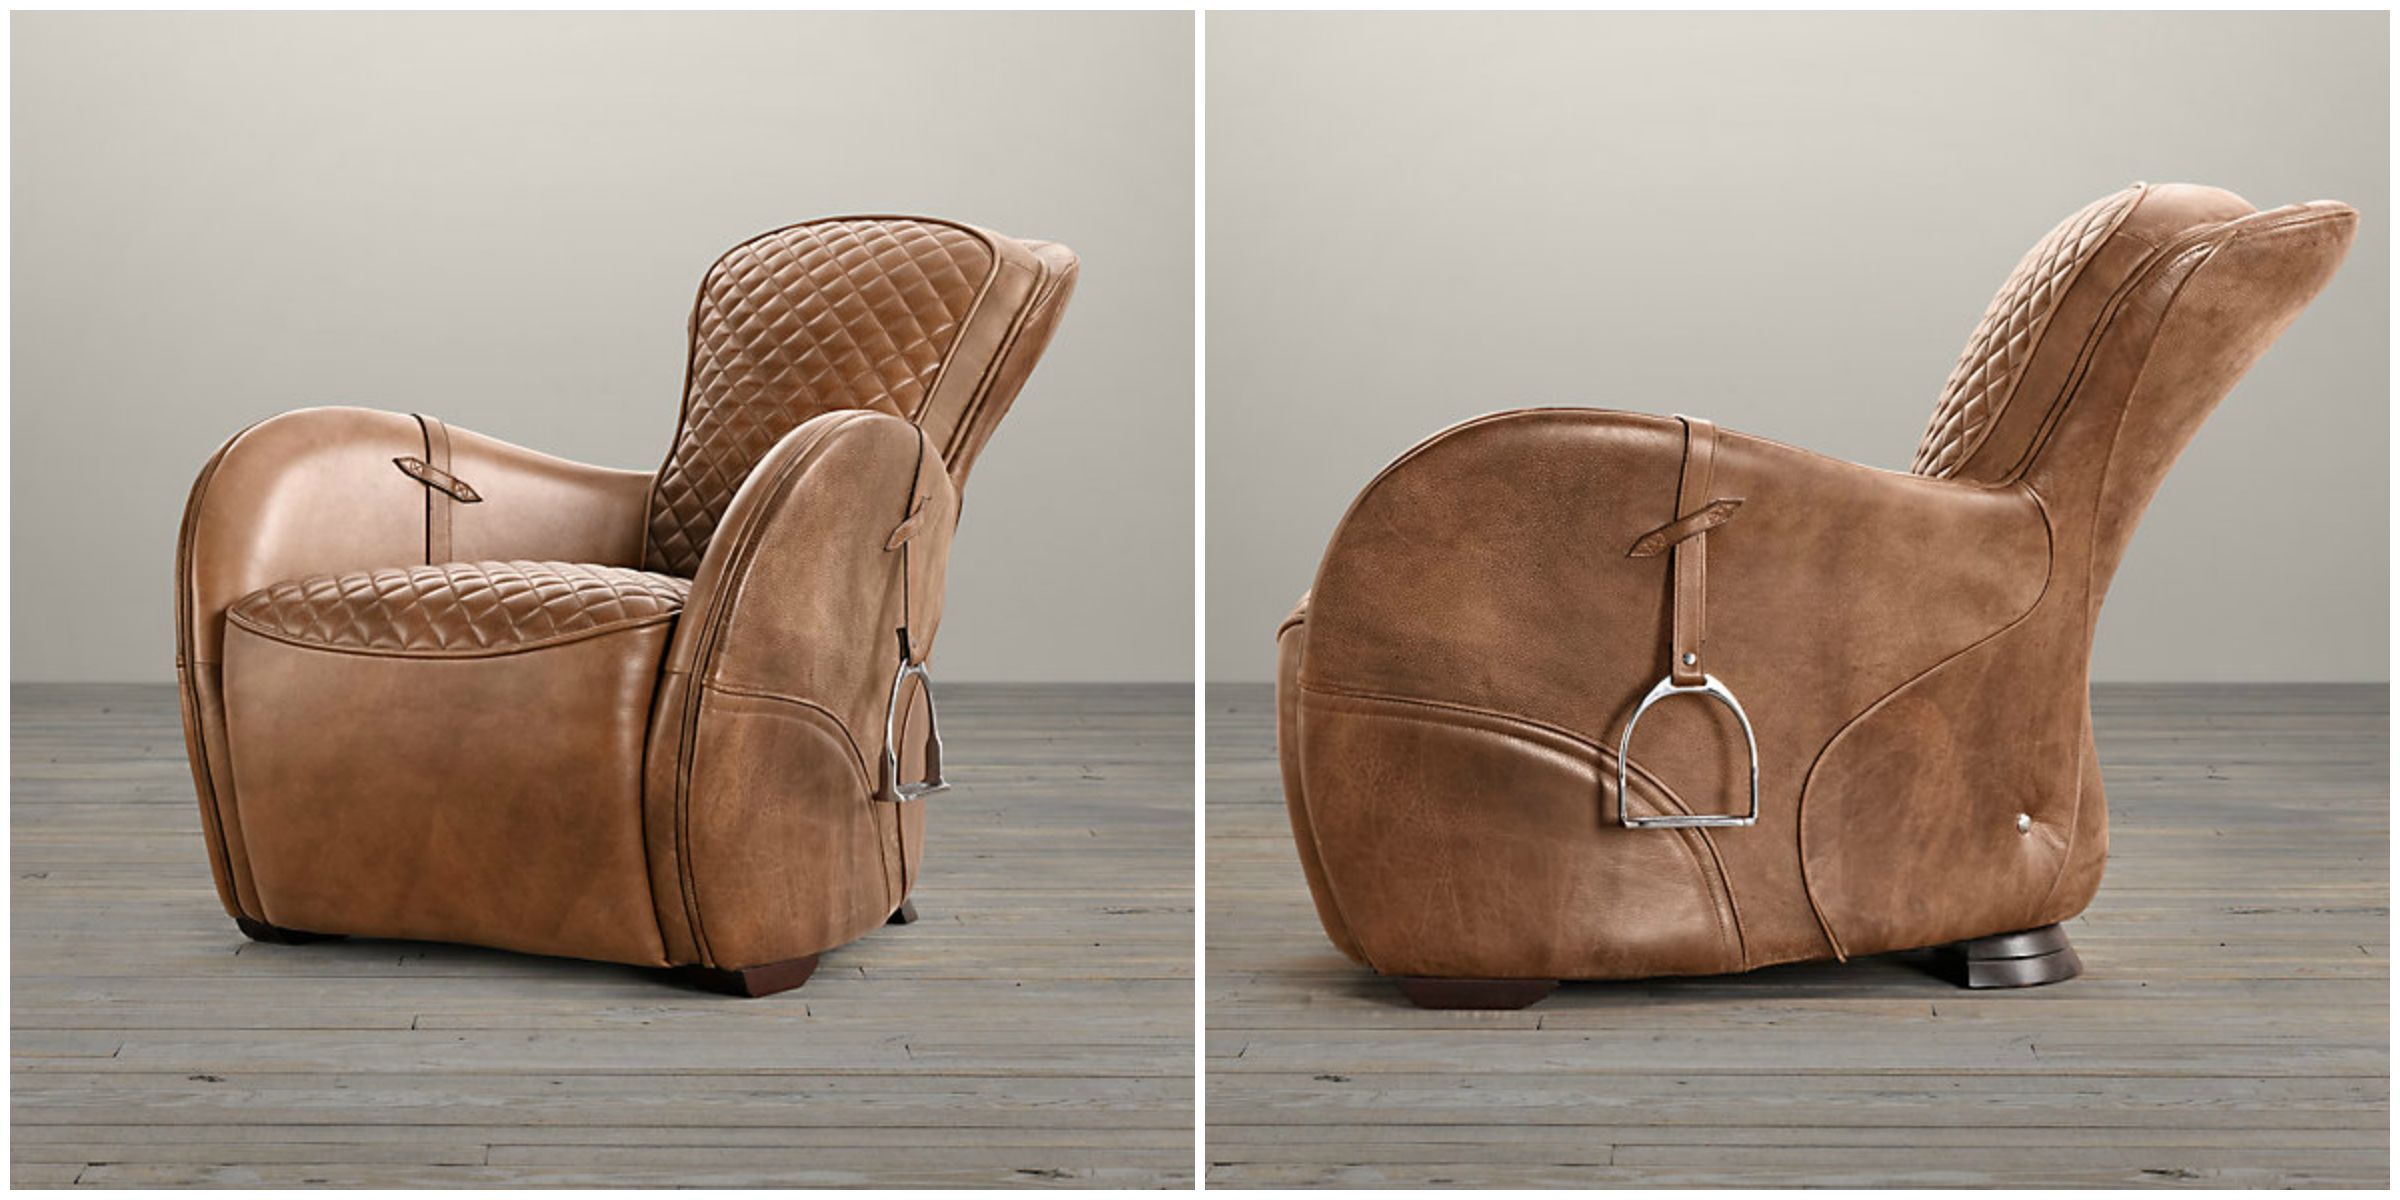 Equestrian Saddle Chair | Chairs | Pinterest | Kind Of, Love This And I Love